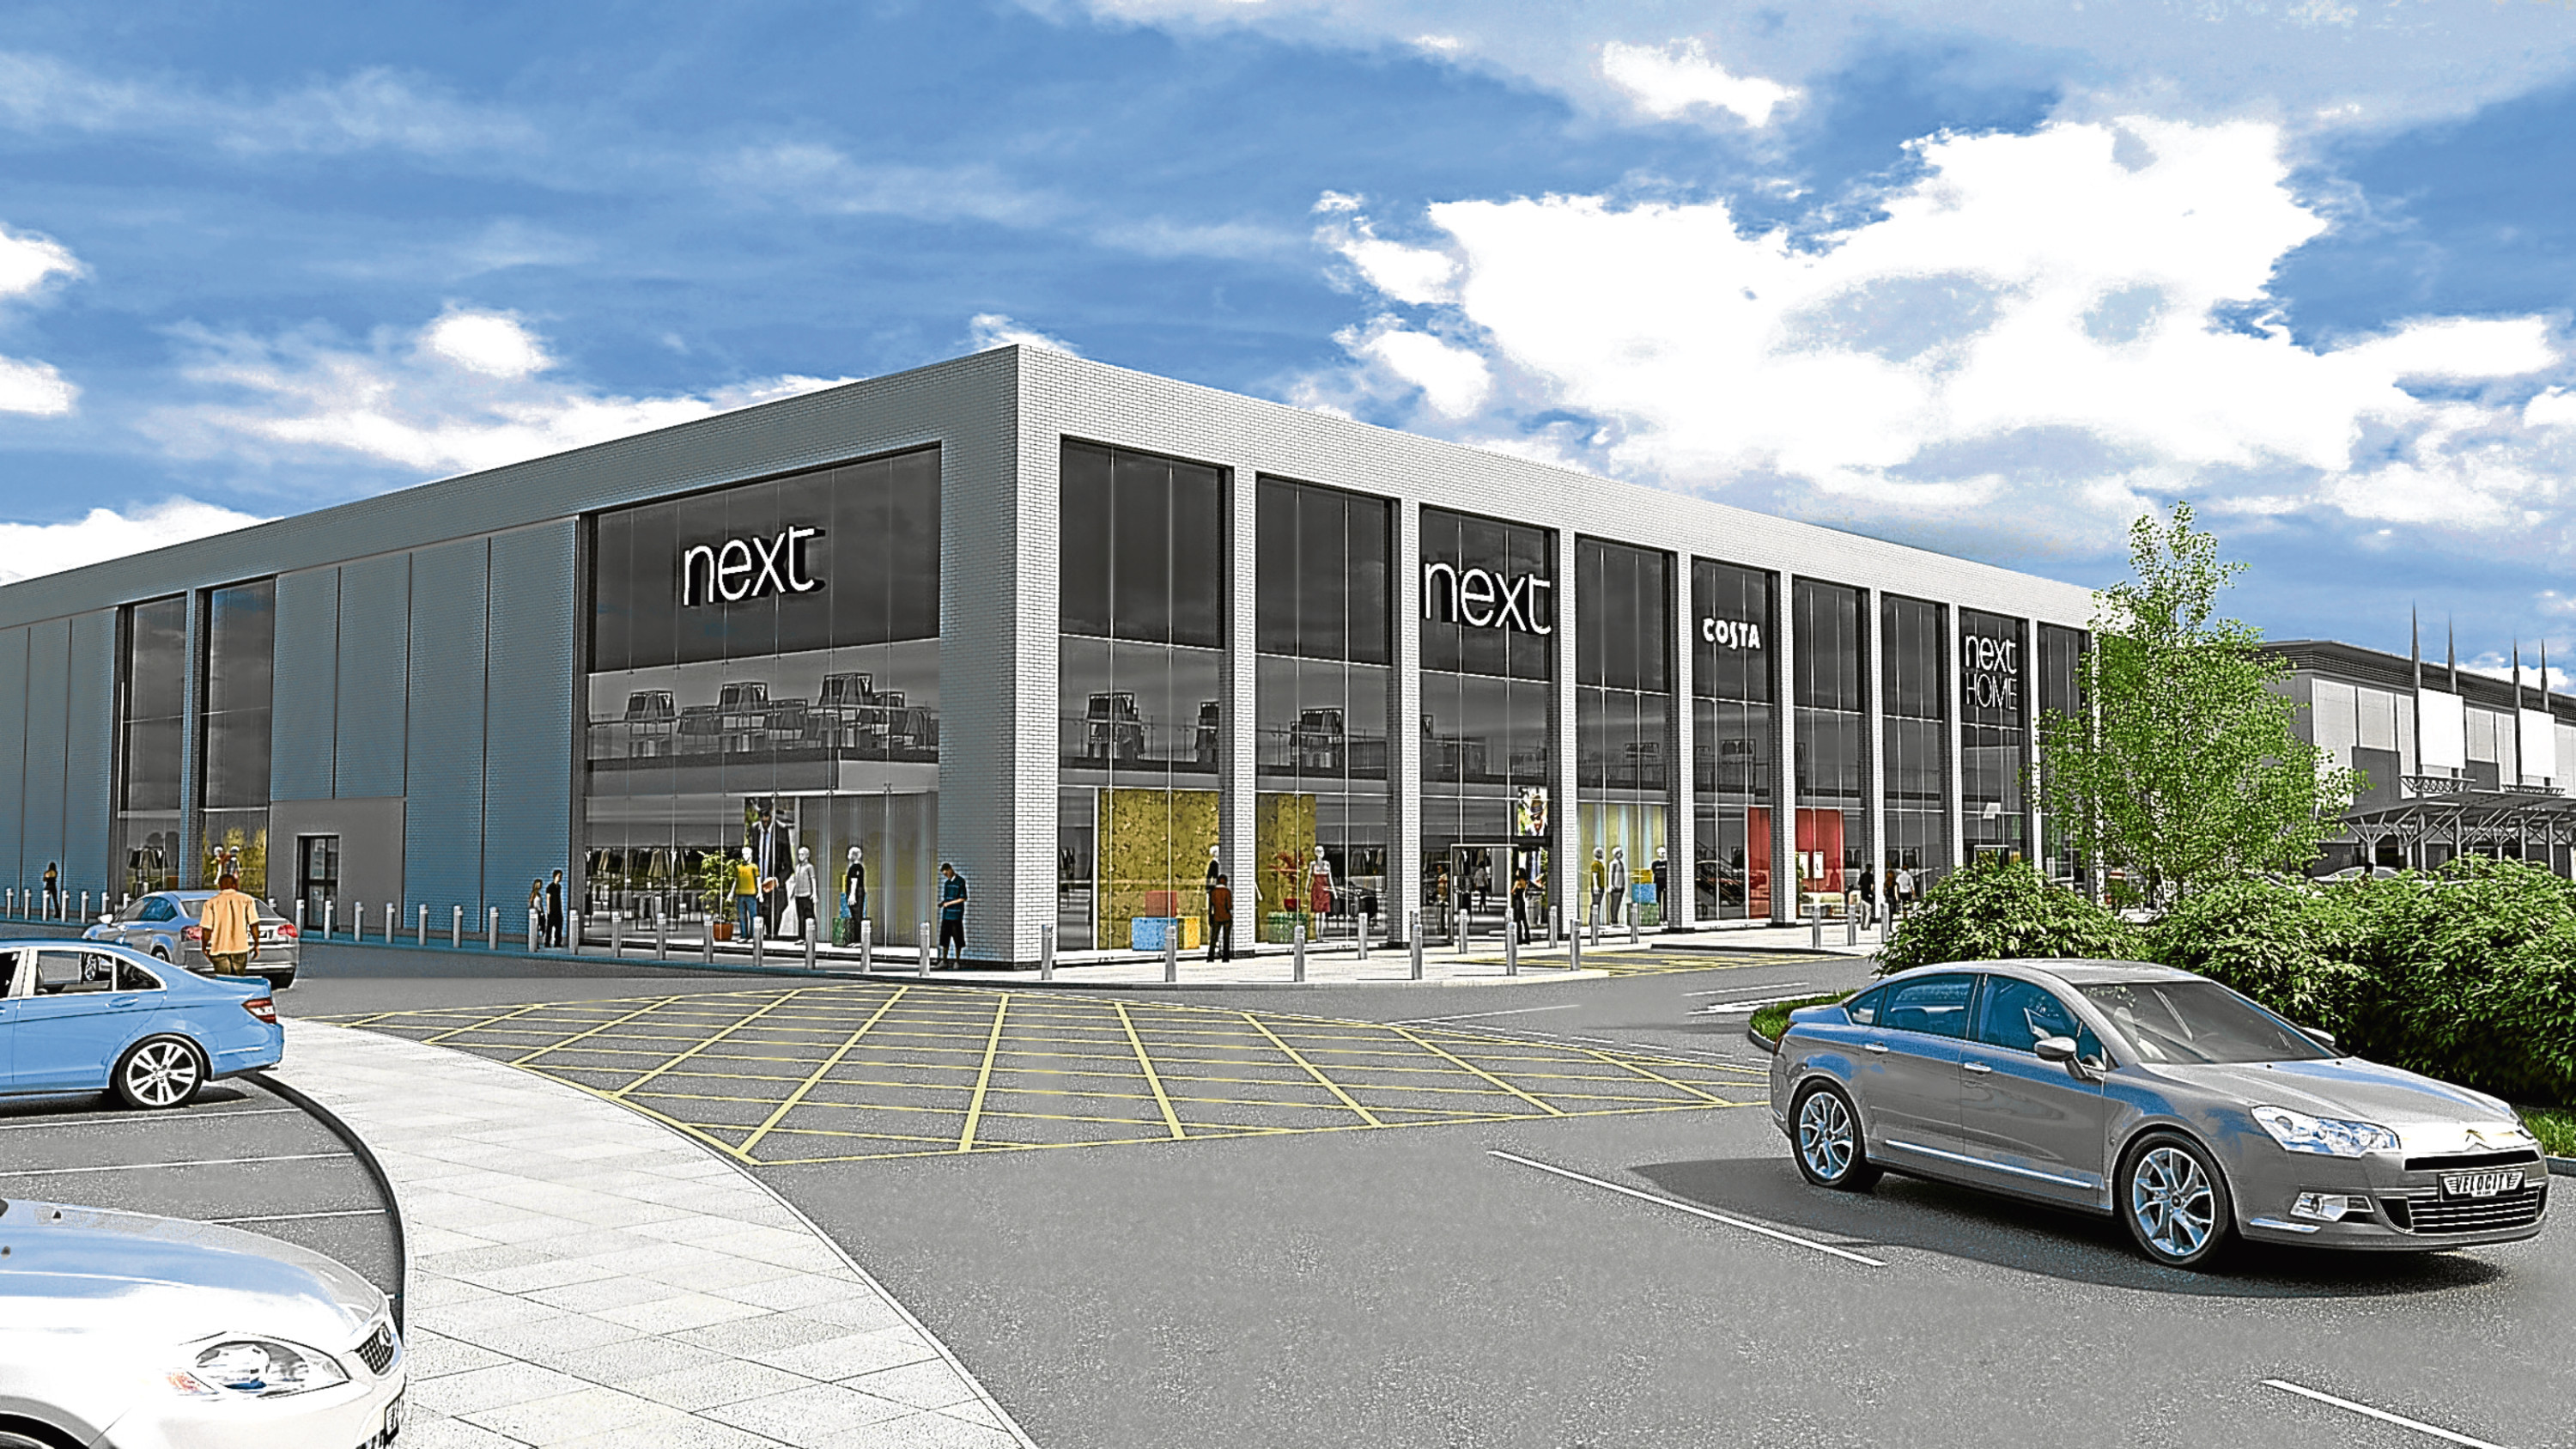 An artist's impression of the proposed Next store.